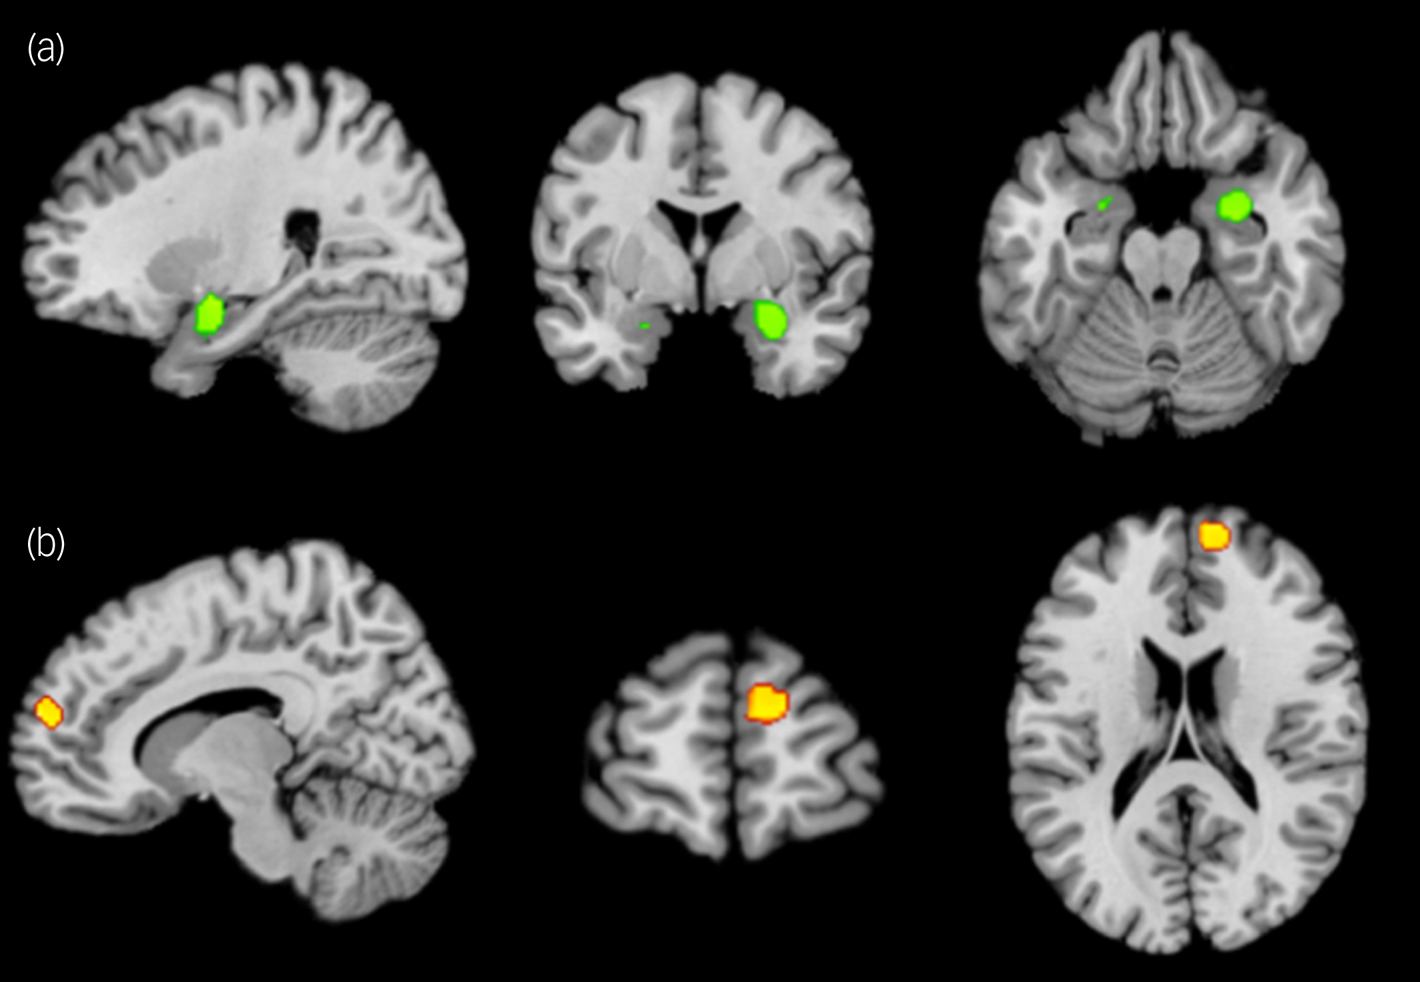 Do psychological therapy and antidepressants help by changing the same brain regions?